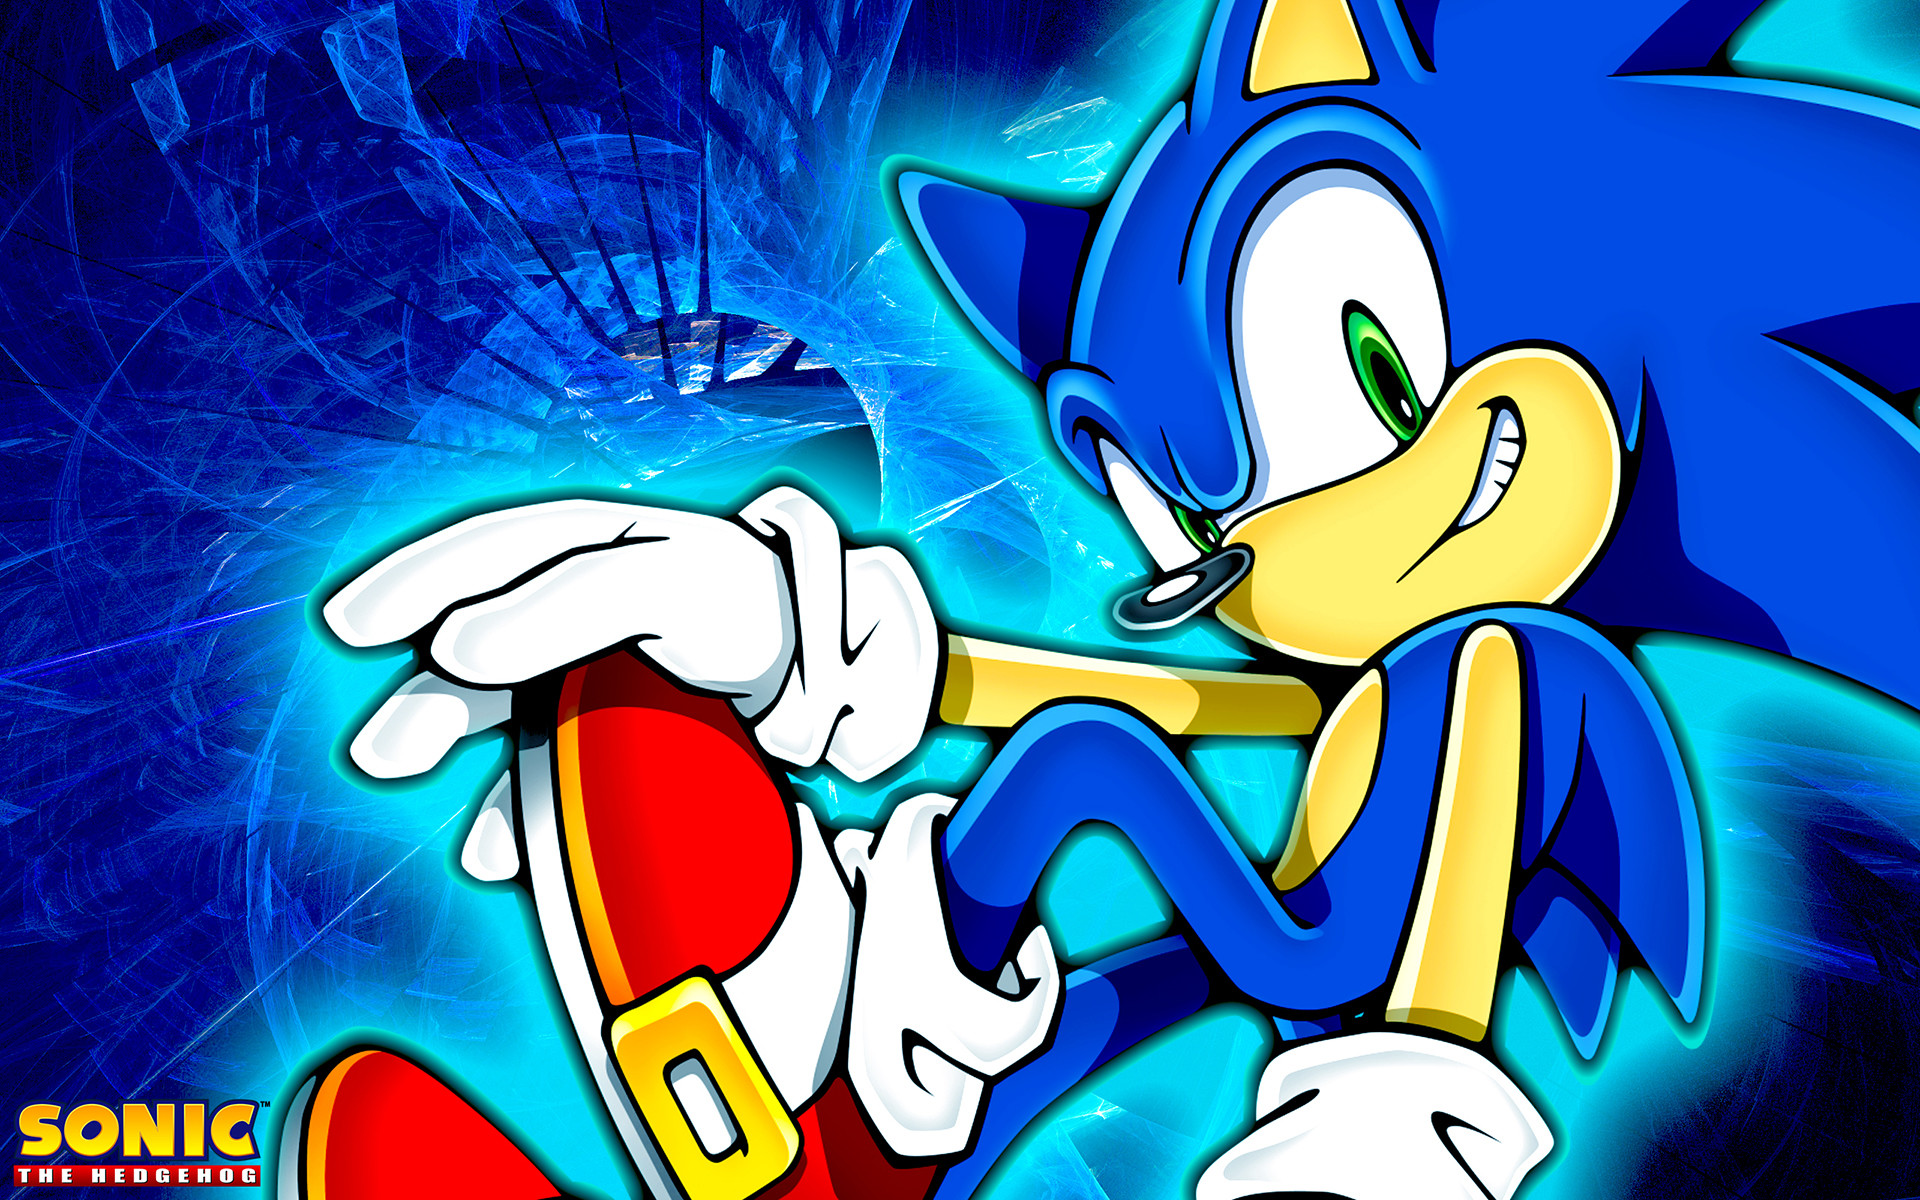 Classic Sonic The Hedgehog And Friends Wallpaper by .